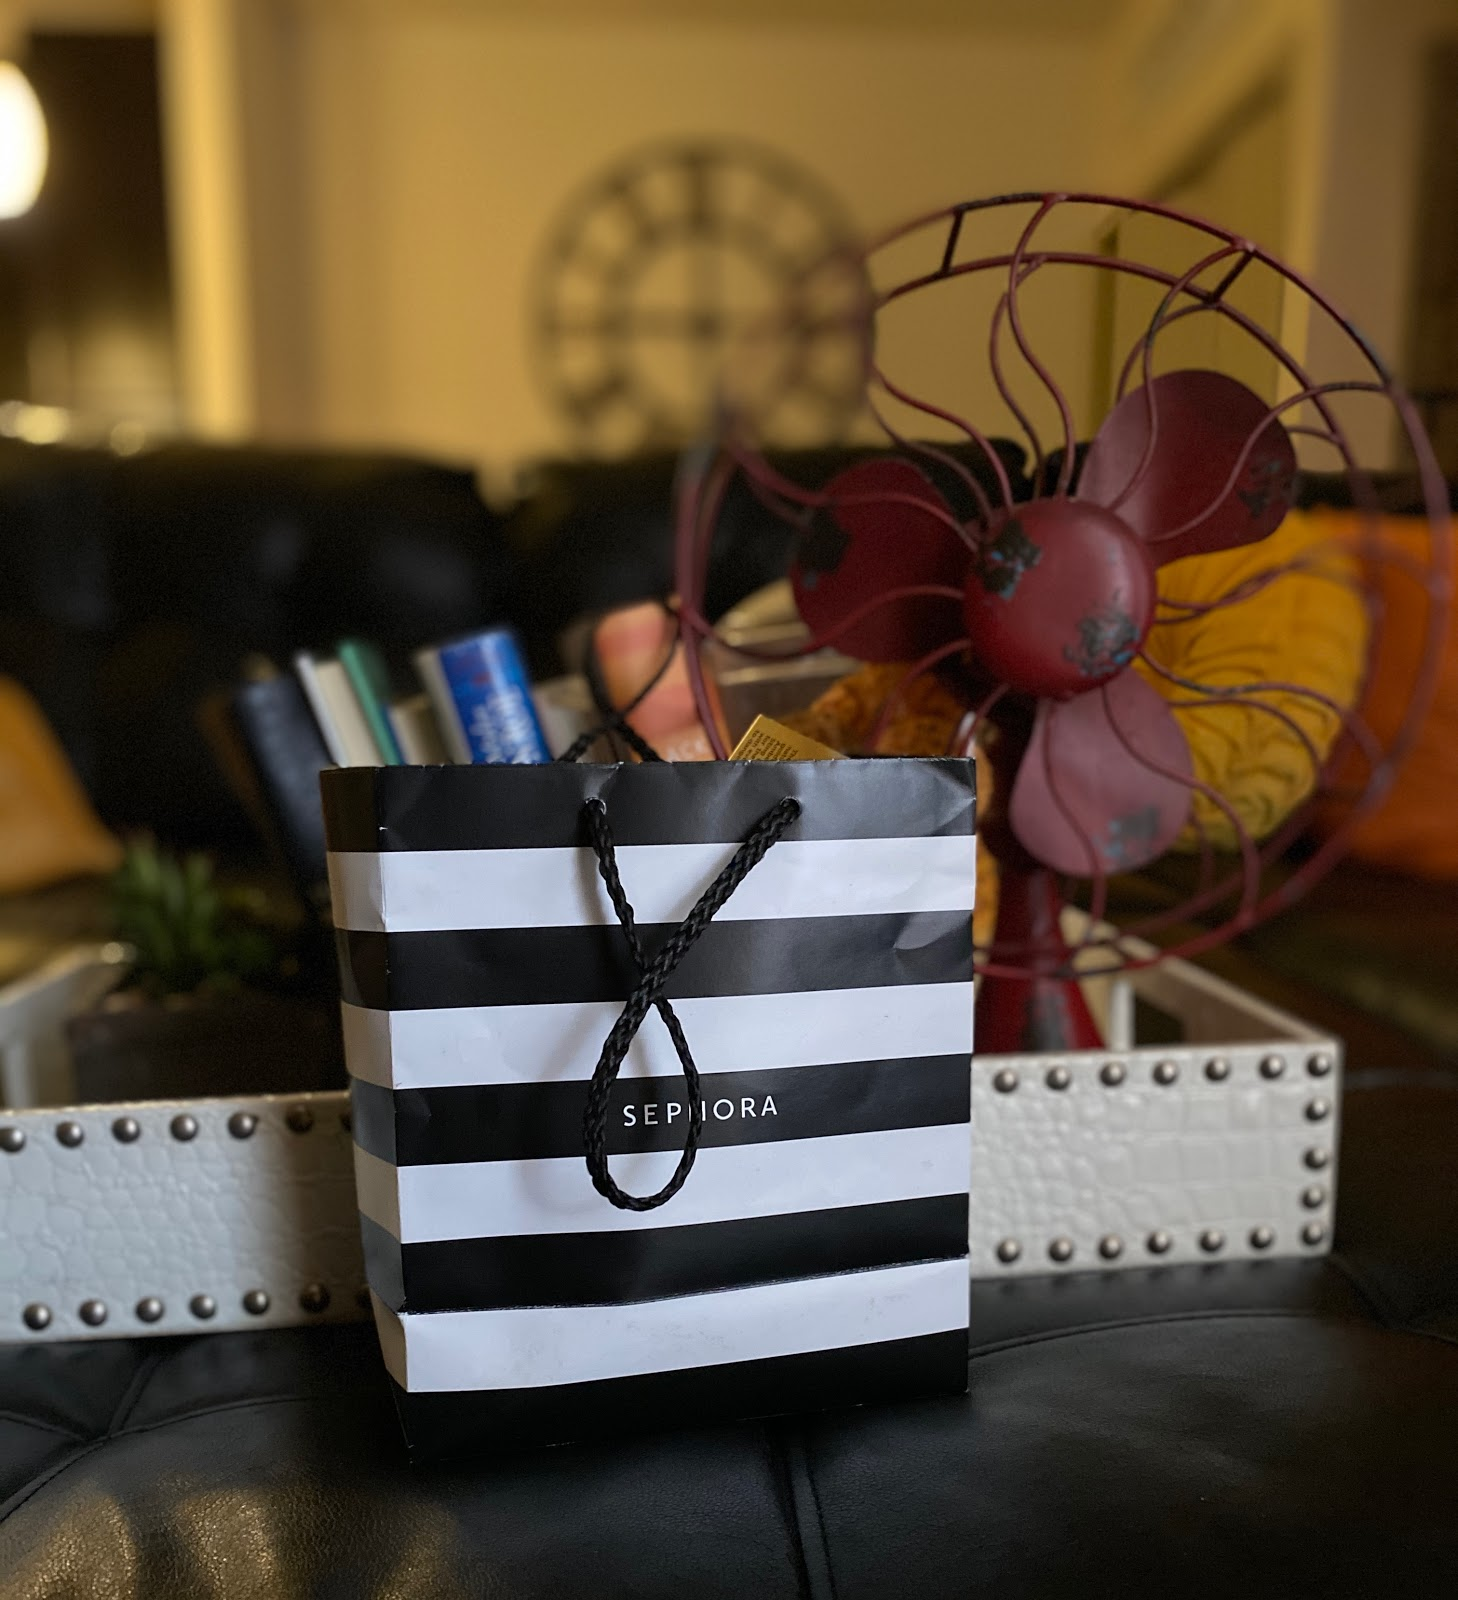 Image: Sephora bag filled with new current beauty items. such as eye shadow, lip gloss, beauty blender